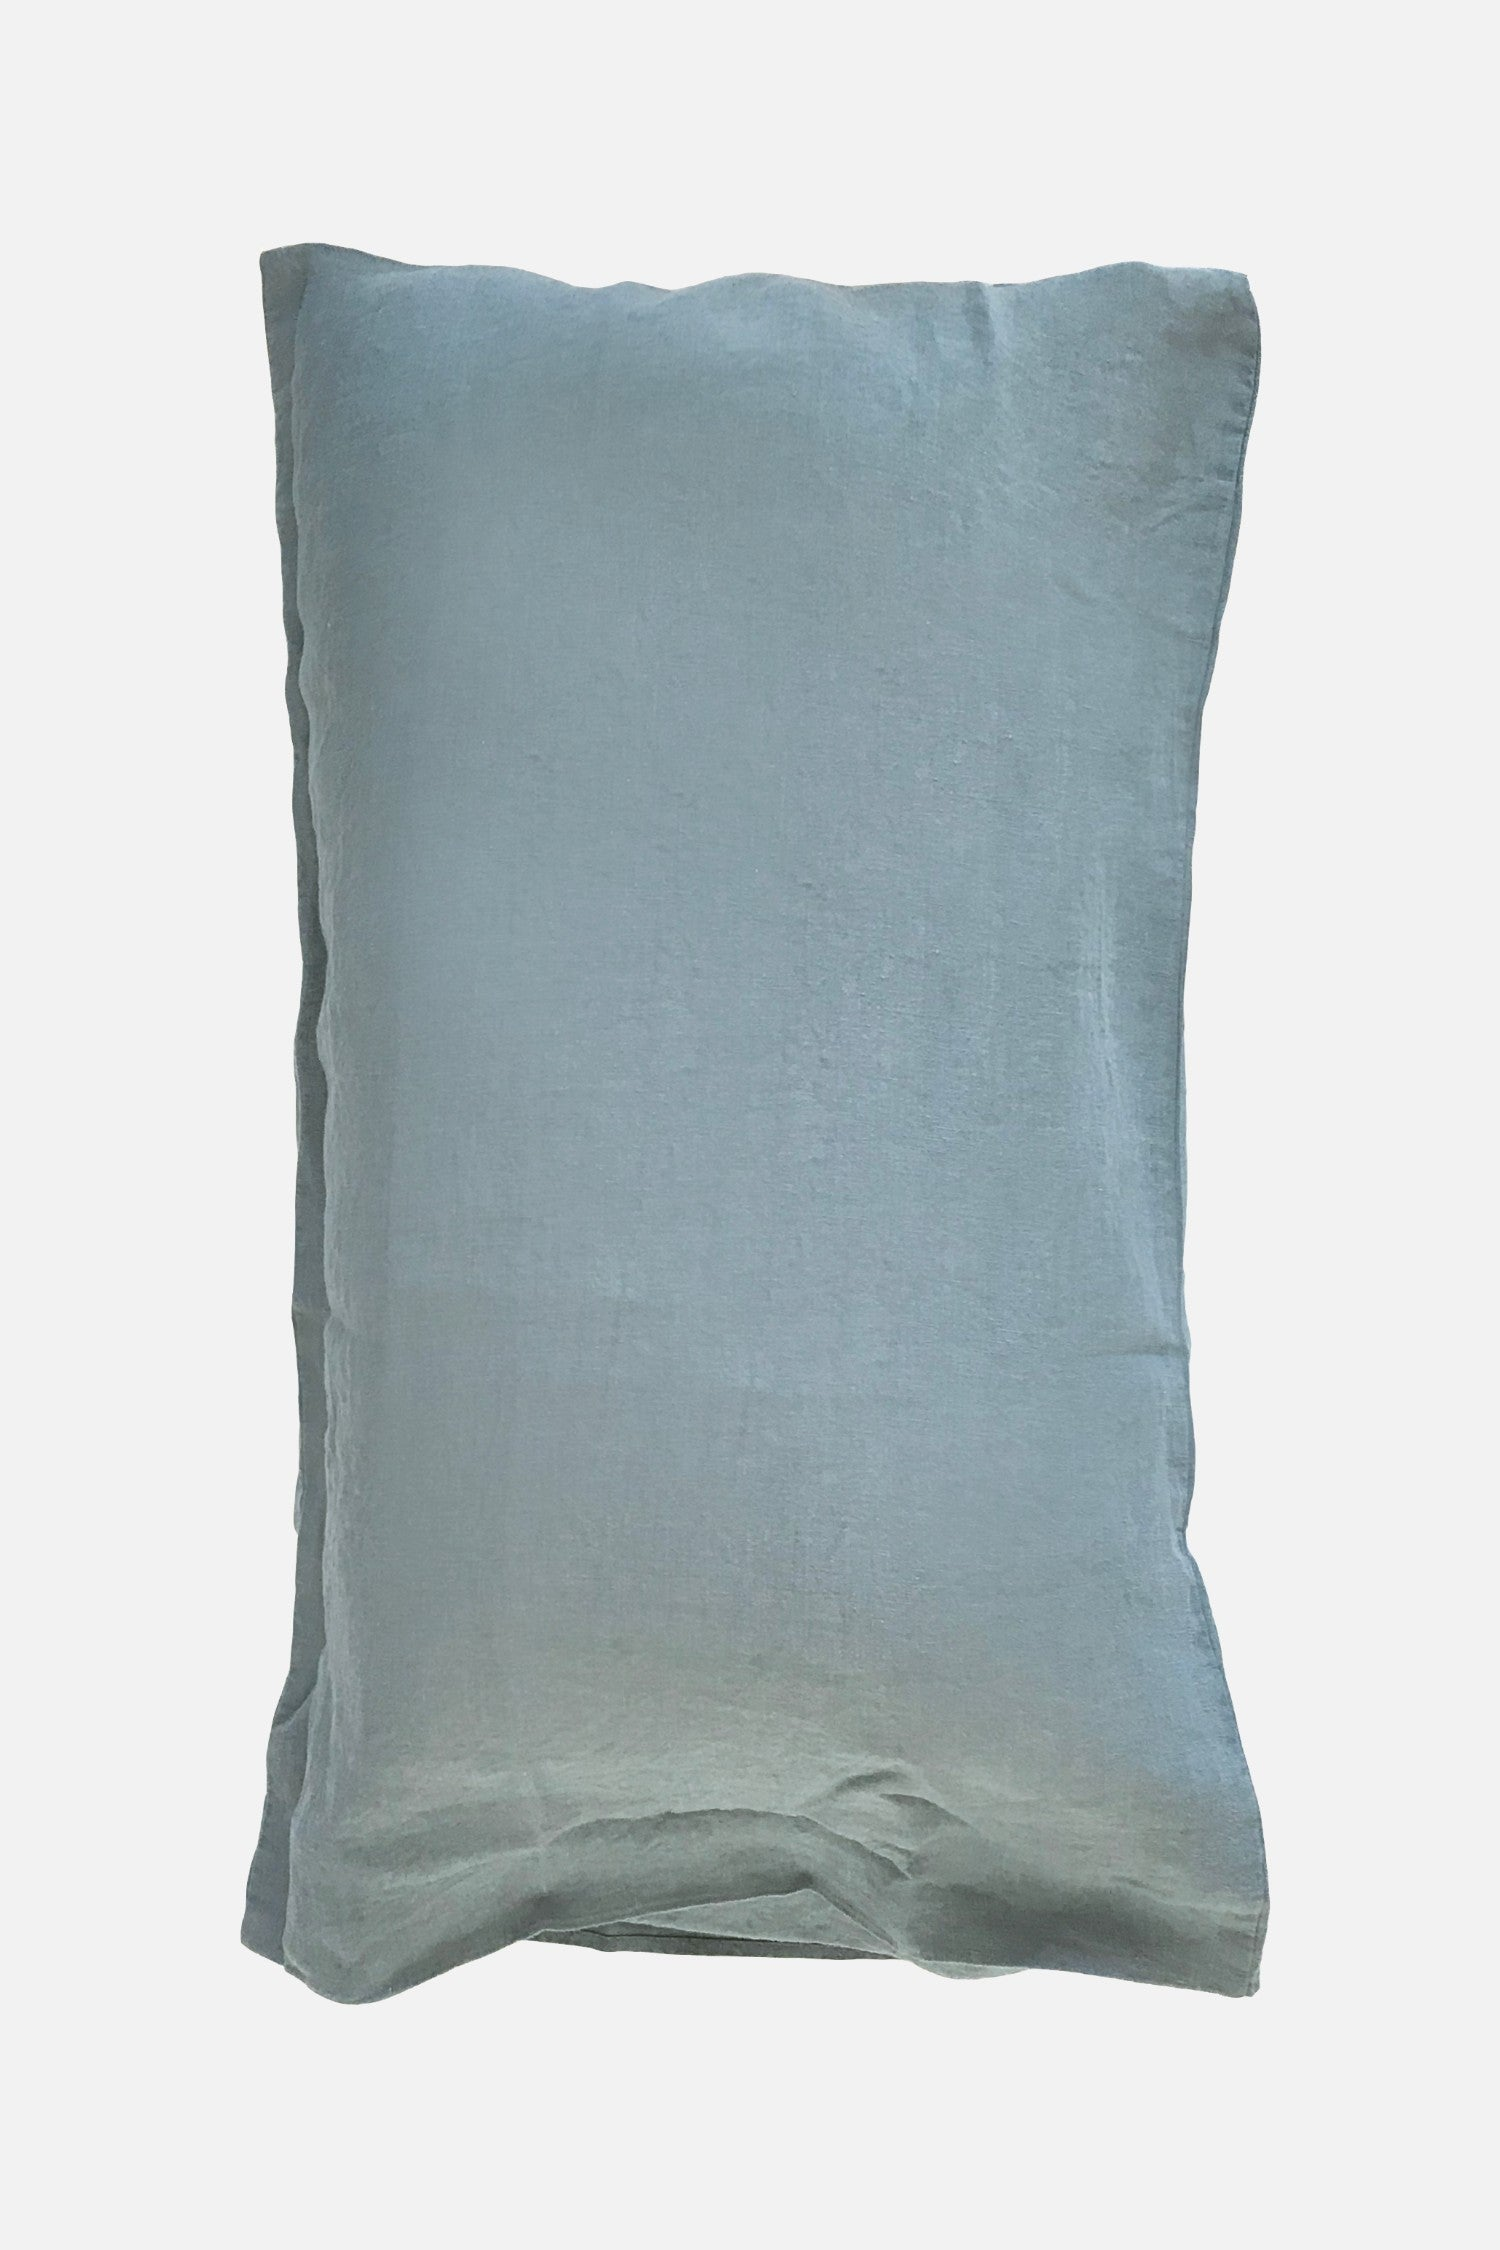 washed pure linen pillowcase greenstone